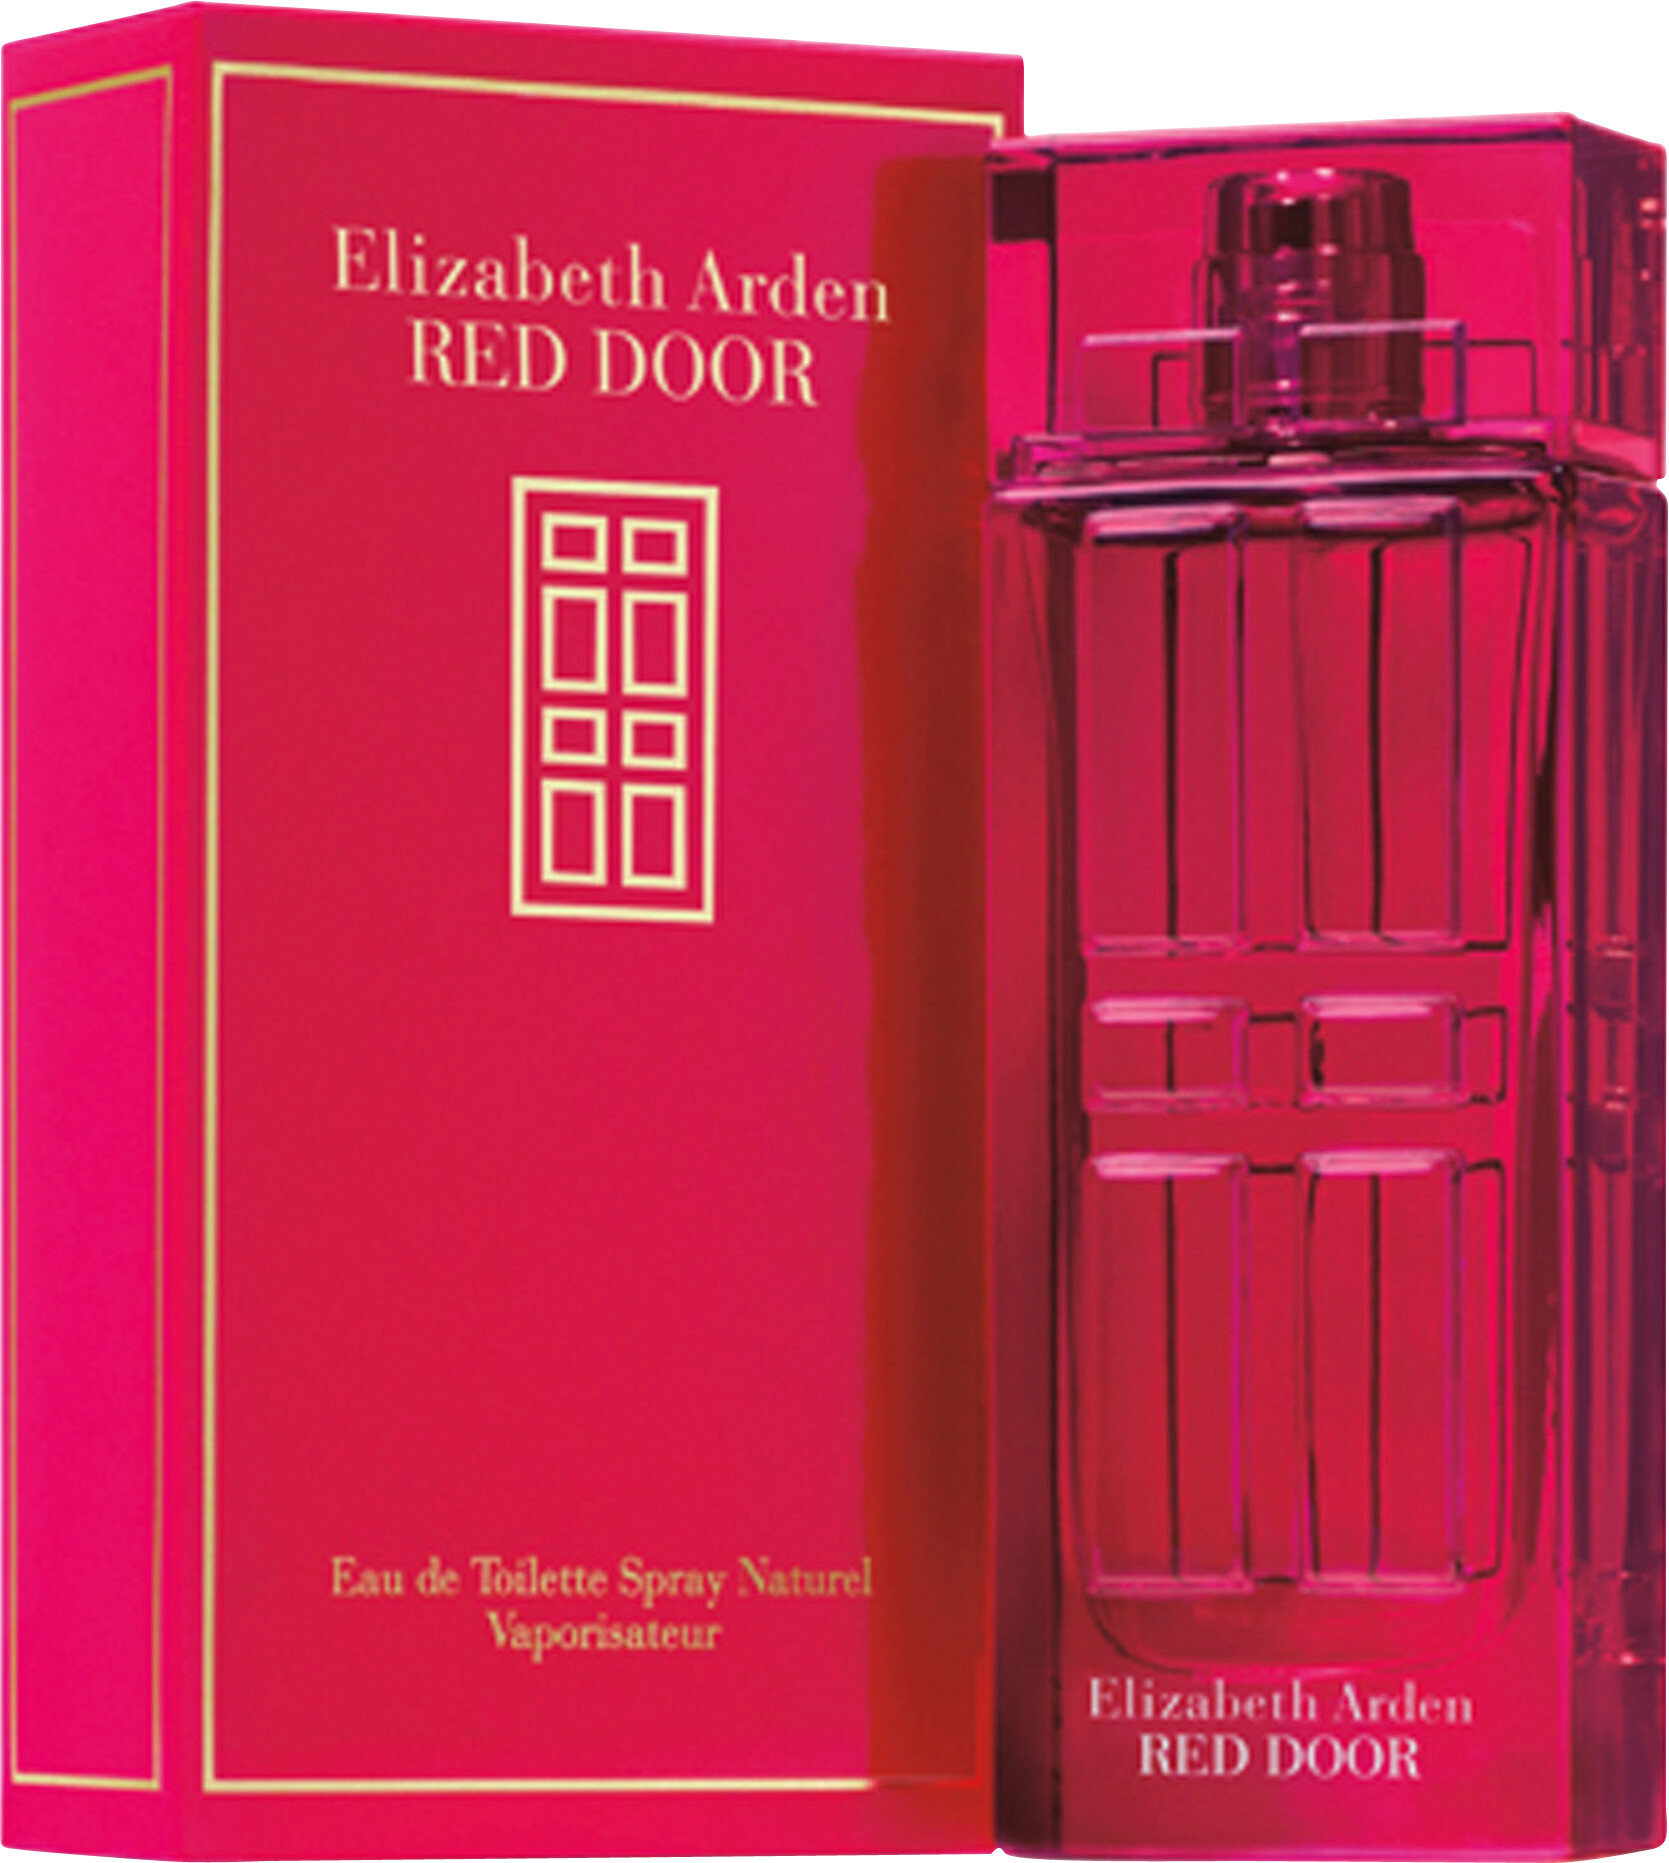 elizabeth arden red door eau de toilette spray 50ml with box